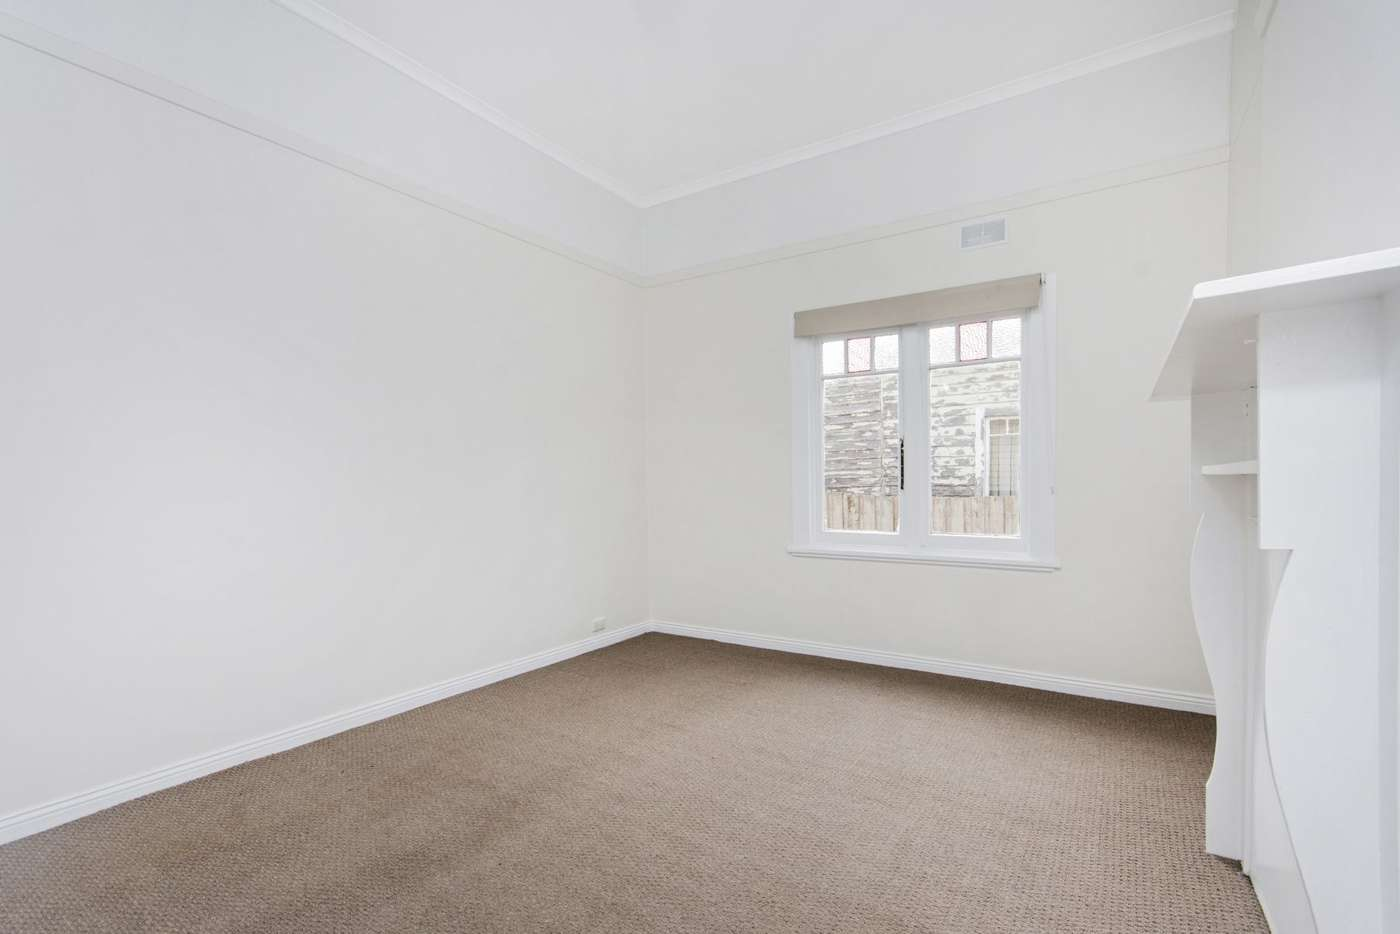 Seventh view of Homely house listing, 16 Moore Street, Invermay TAS 7248